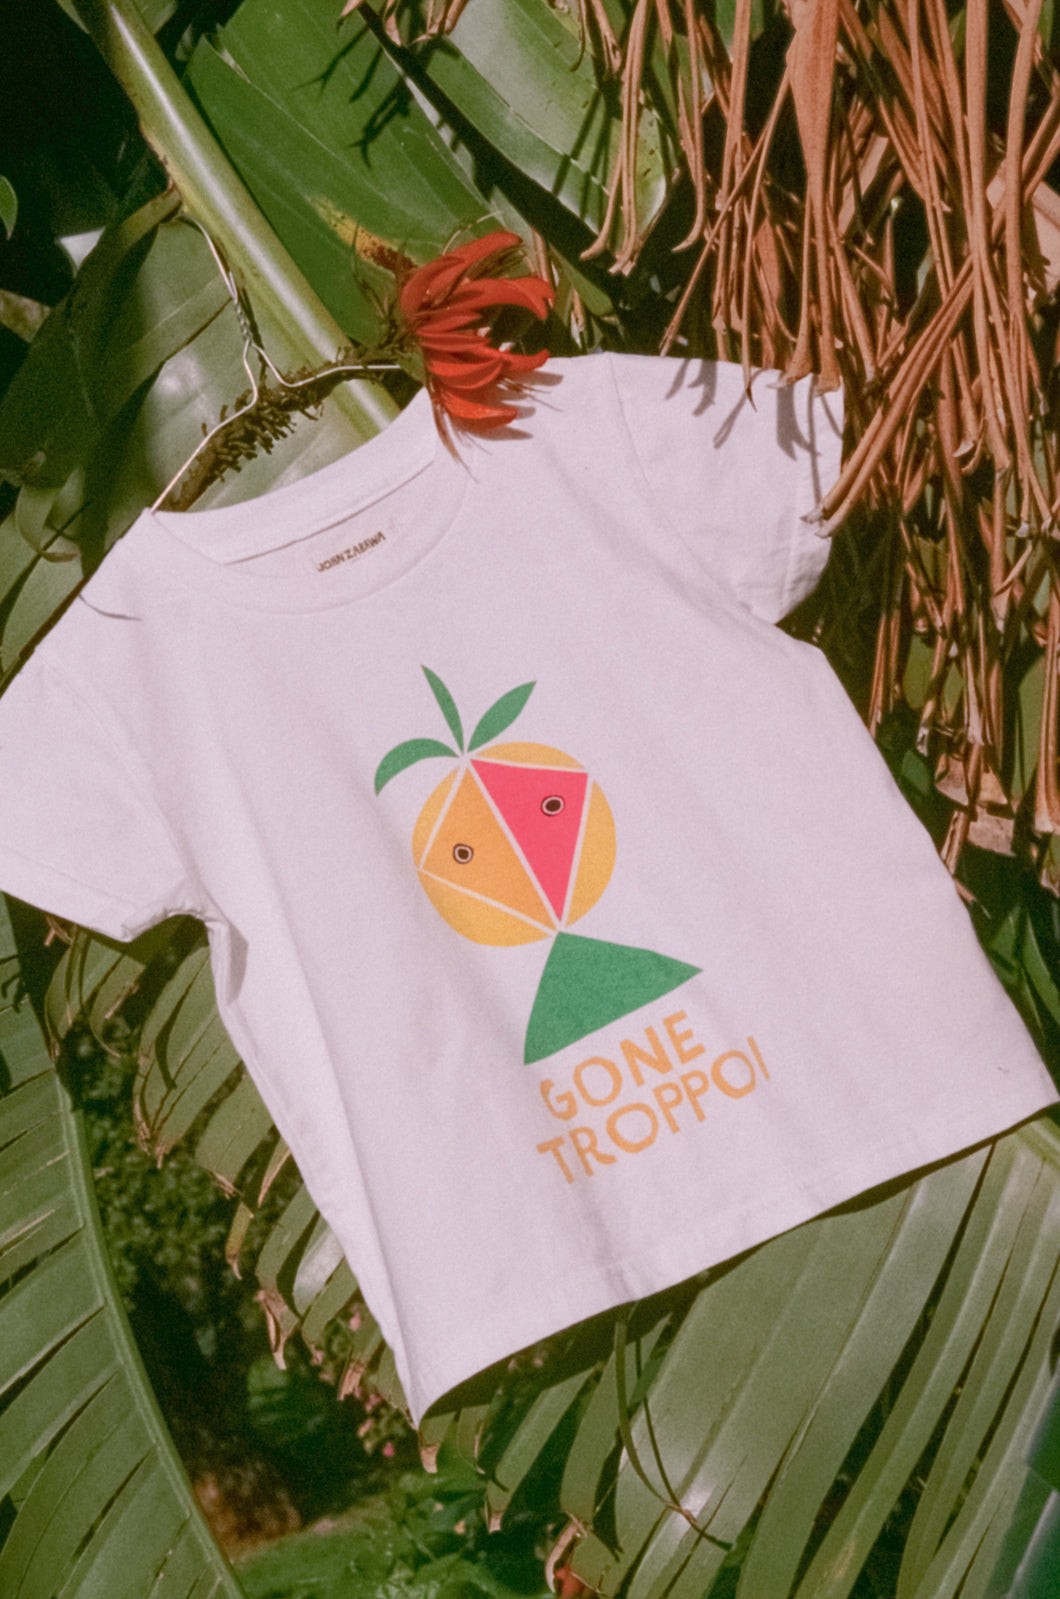 The Bali Tee 'Gone Troppo!'